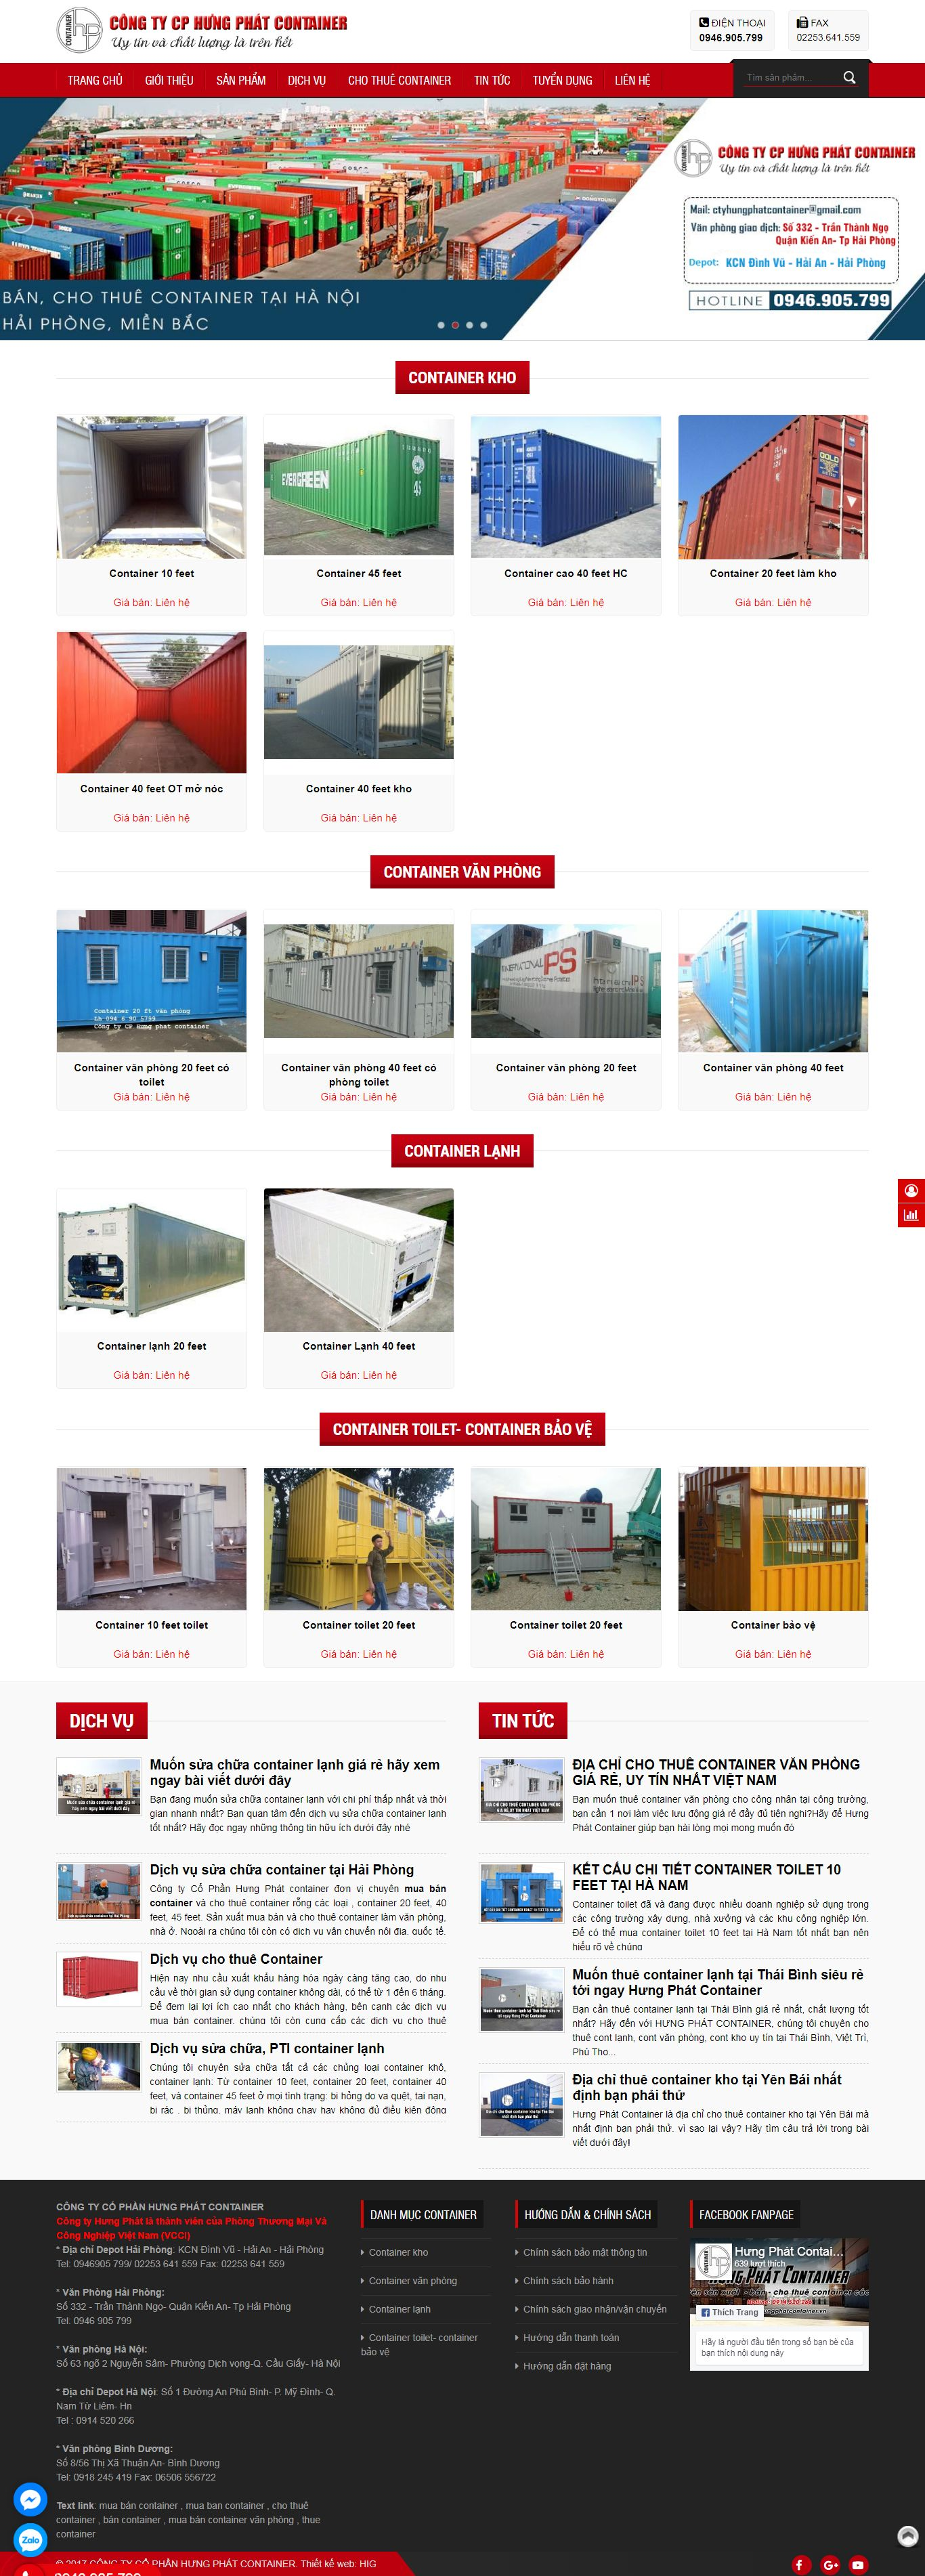 Thiết kế Web mua bán container - hungphatcontainer.com